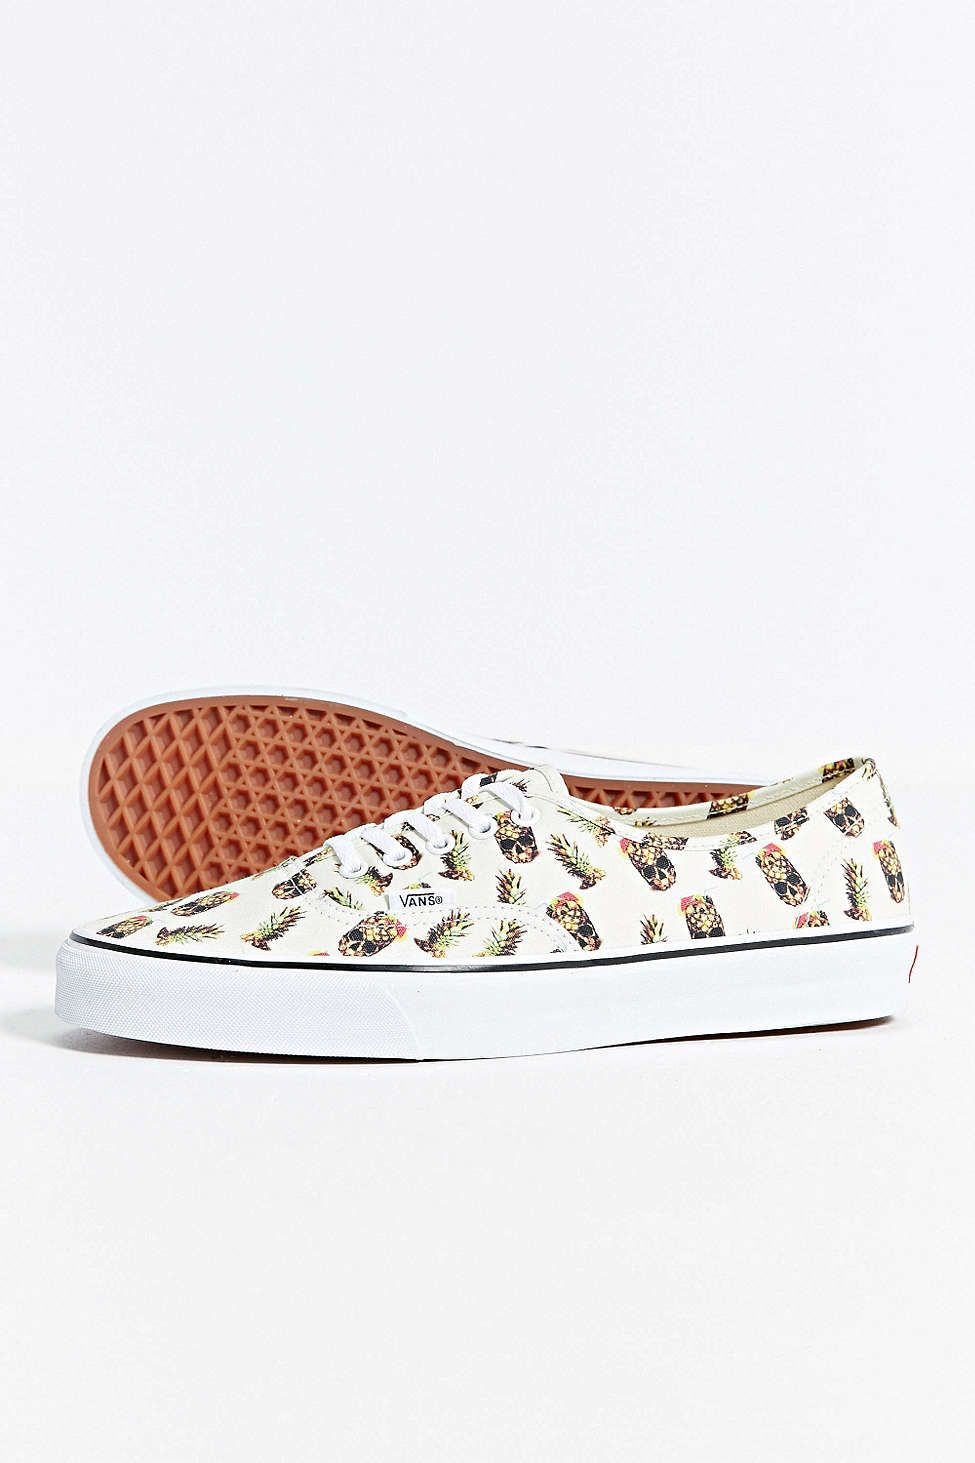 5c925cf8bb Vans Authentic Pineapple Mens Sneaker - Urban Outfitters